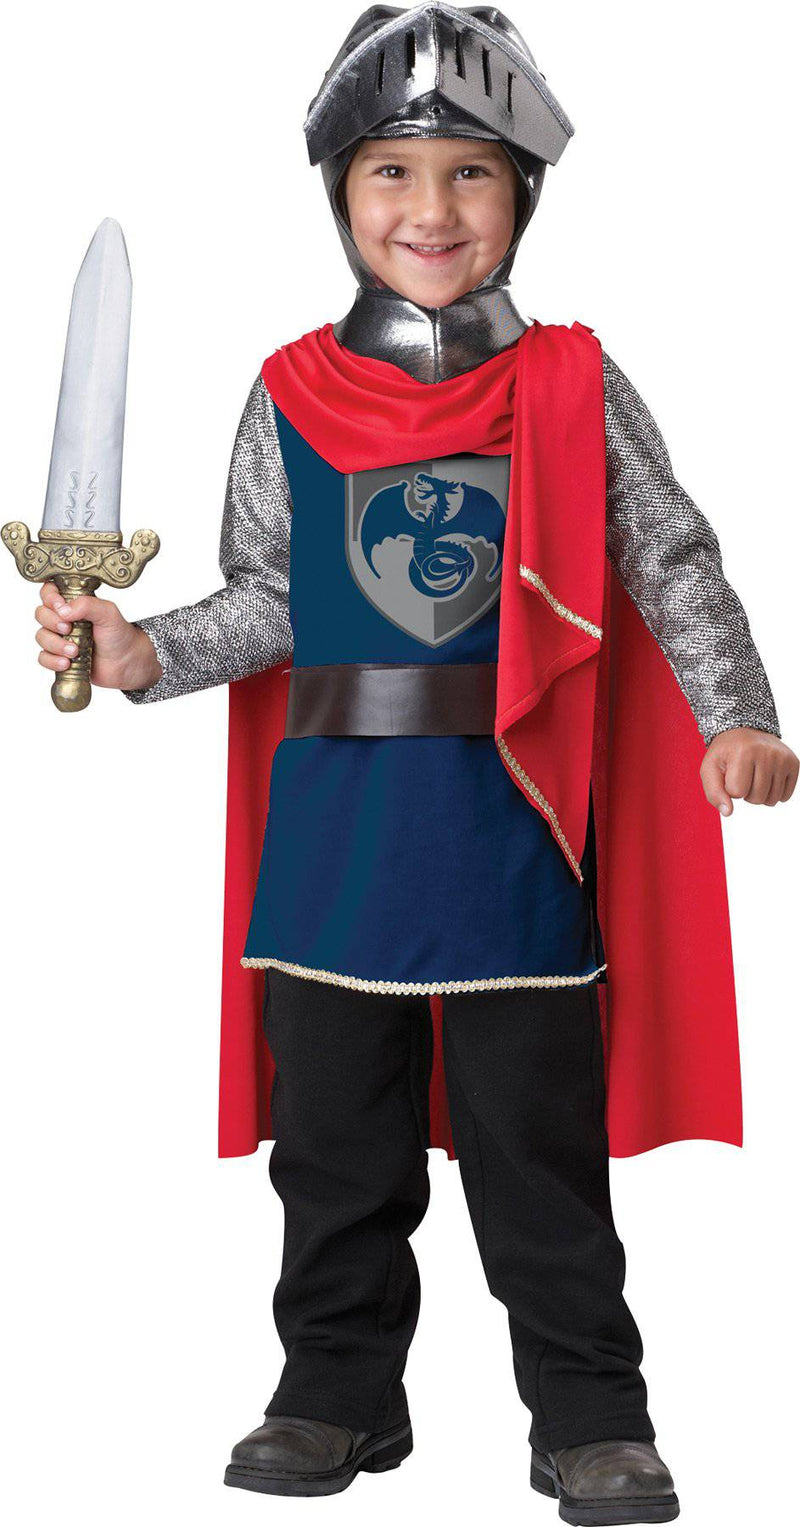 California Costumes Boys' Gallant Knight Theme Warrior Costume - Costume Arena